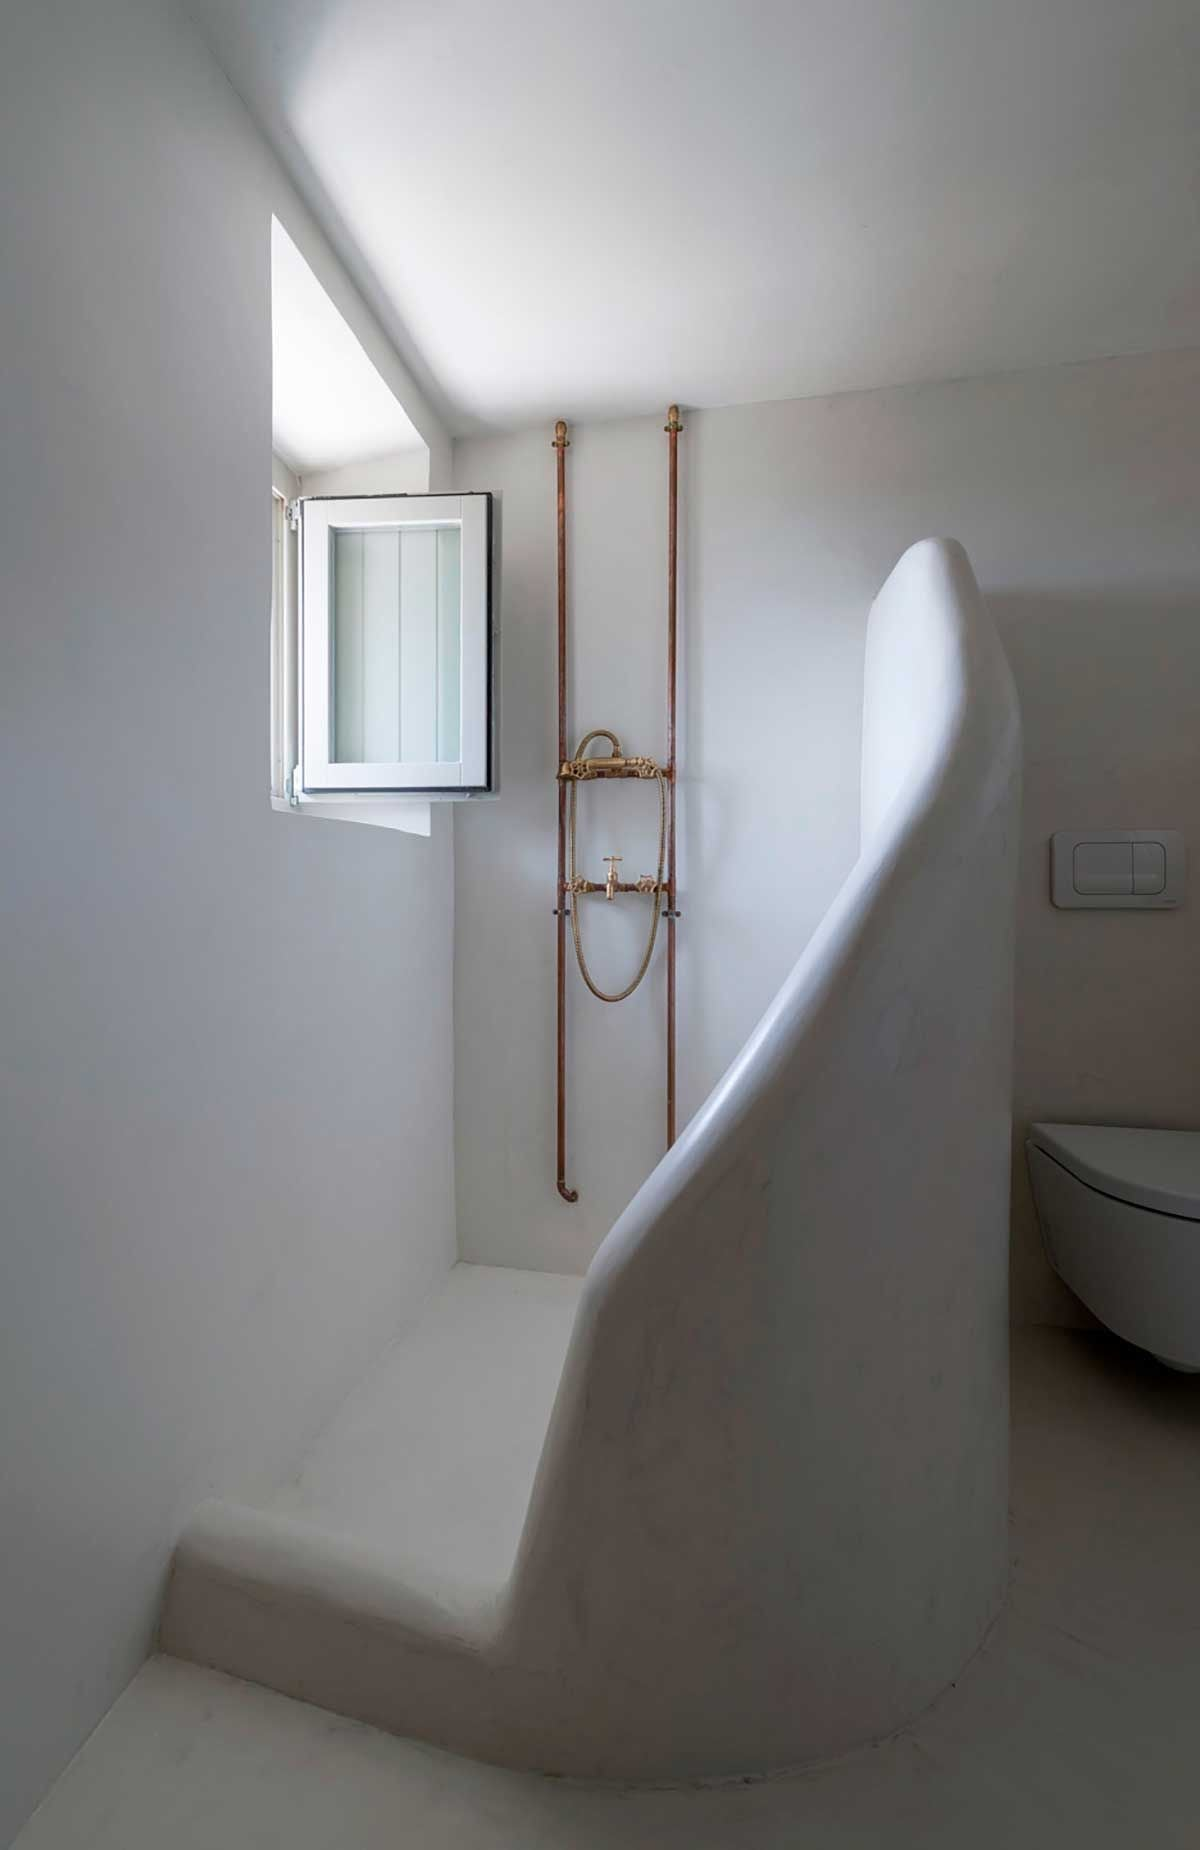 DYKE & DEAN | COPPER PIPE SHOWER